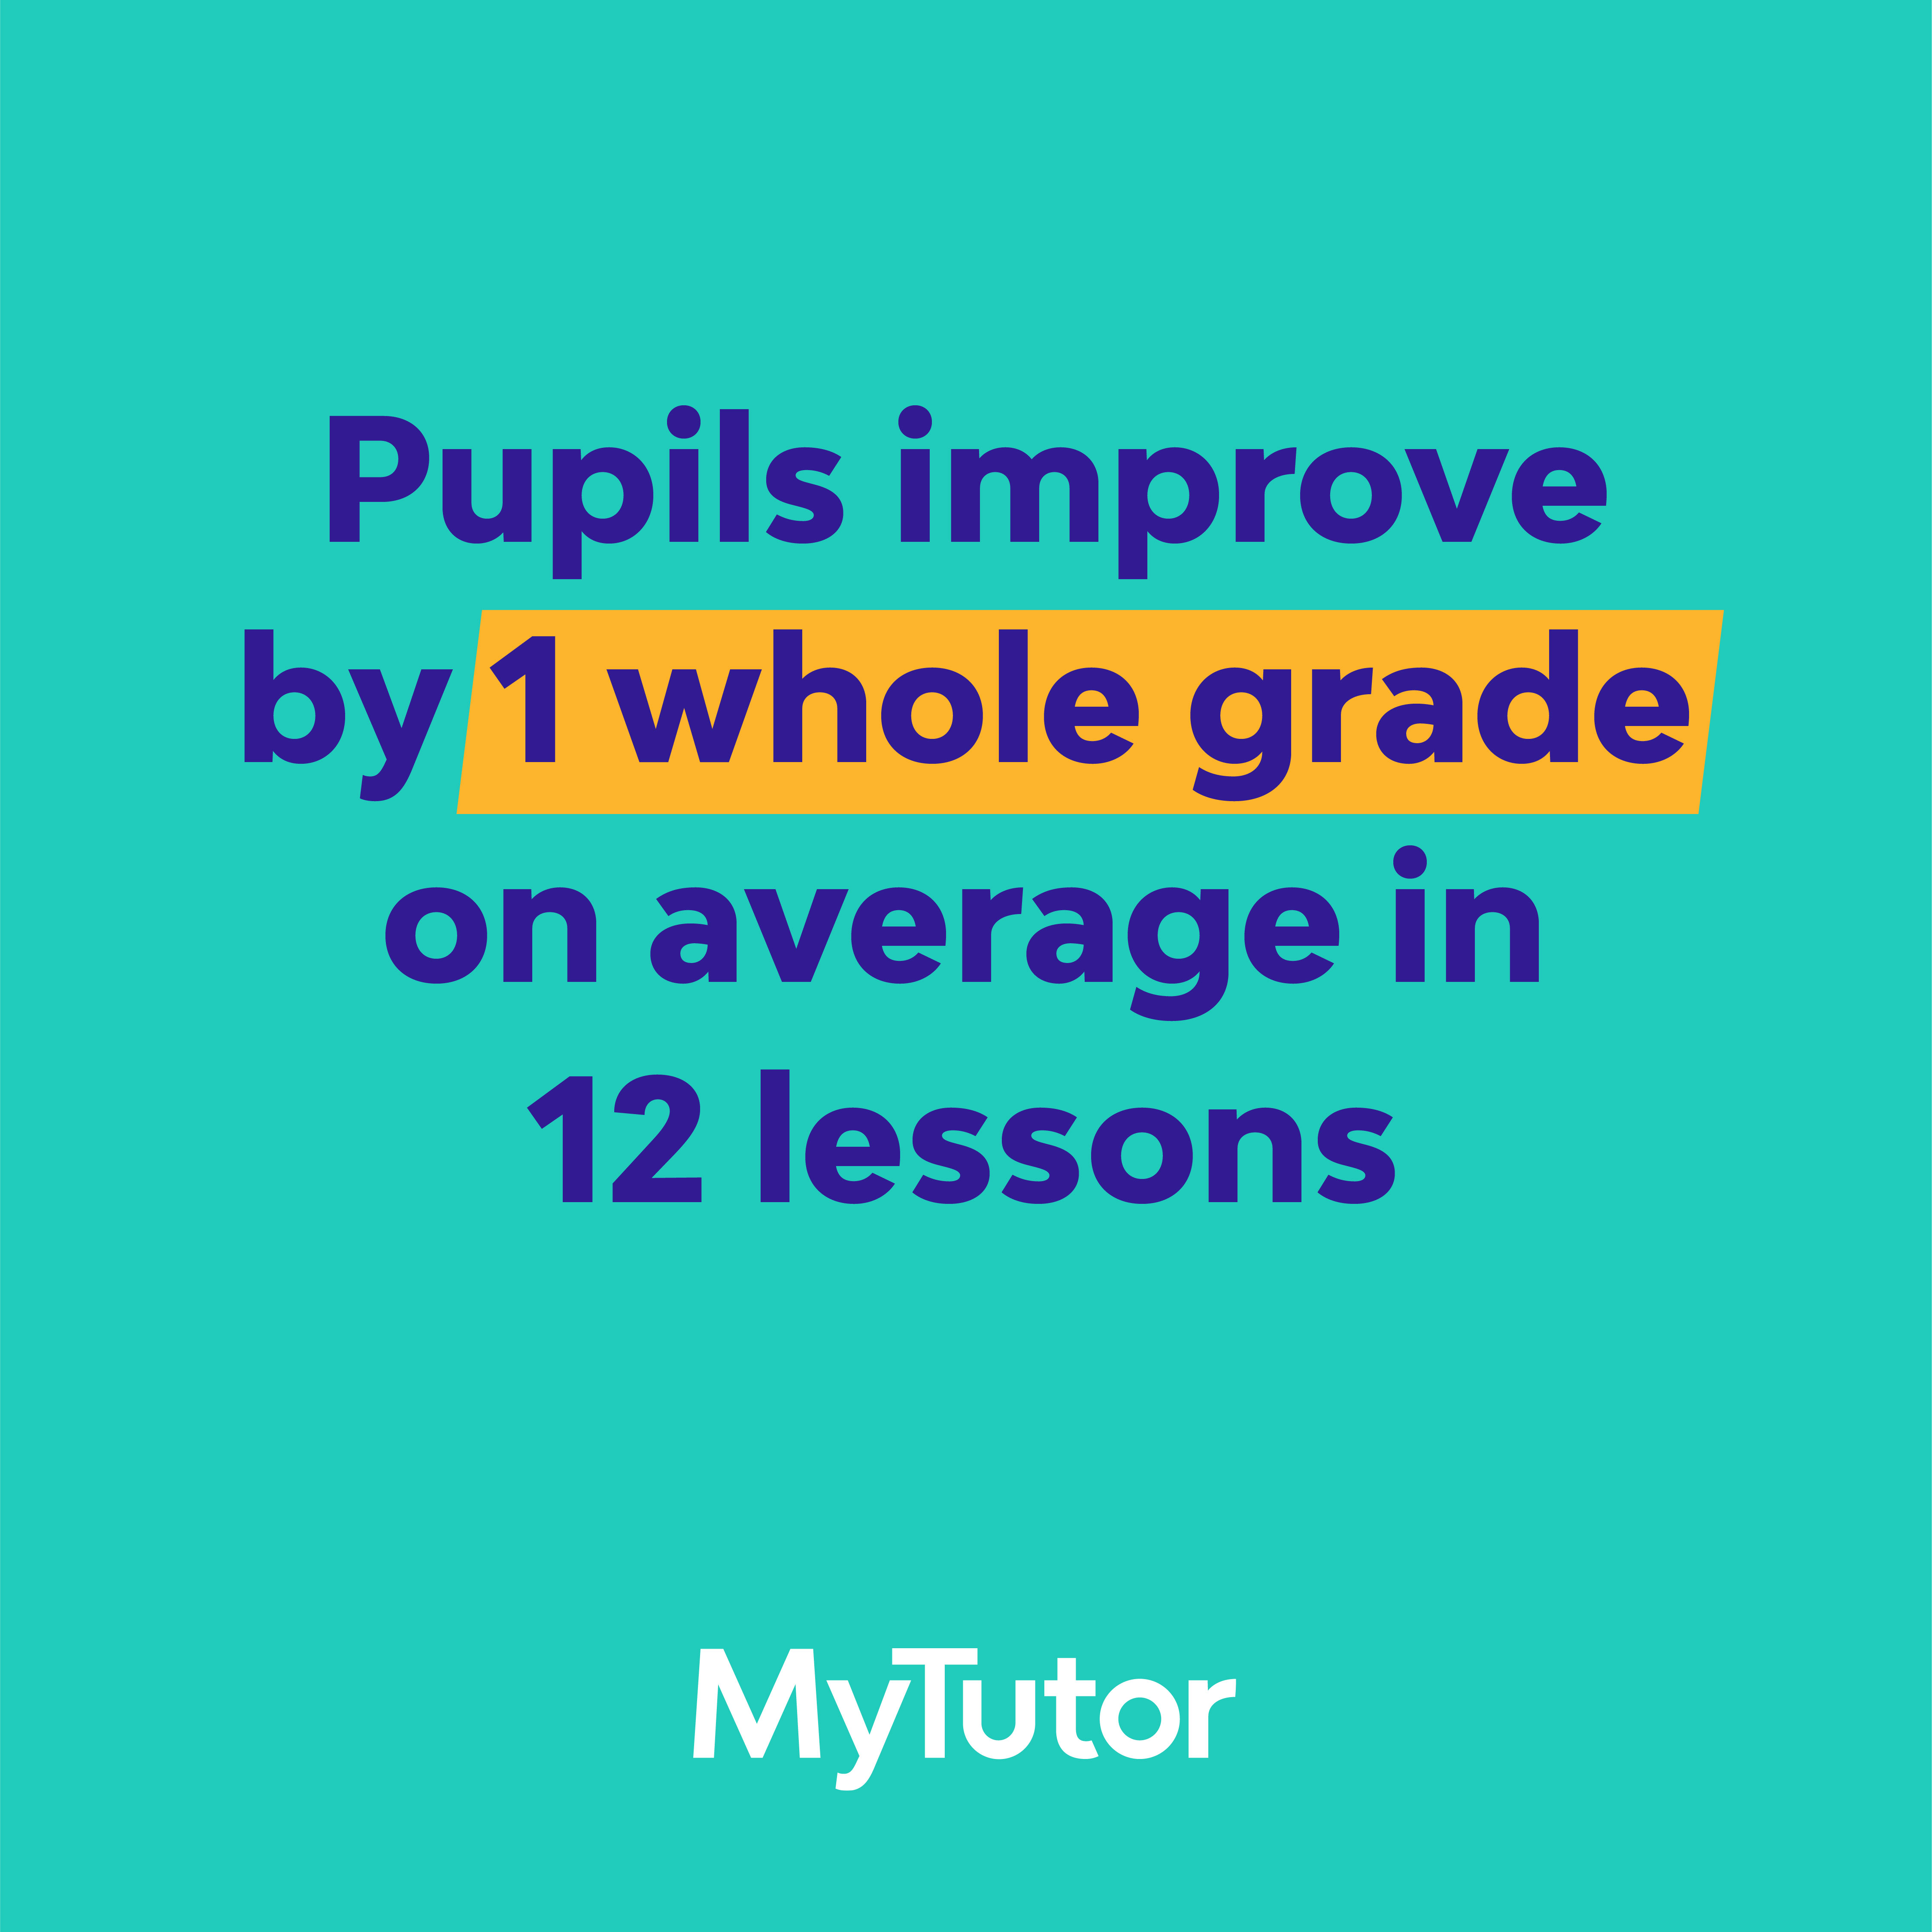 statement-with-pupils-improve-by-whole-grade-in-twelve-lessons-statement